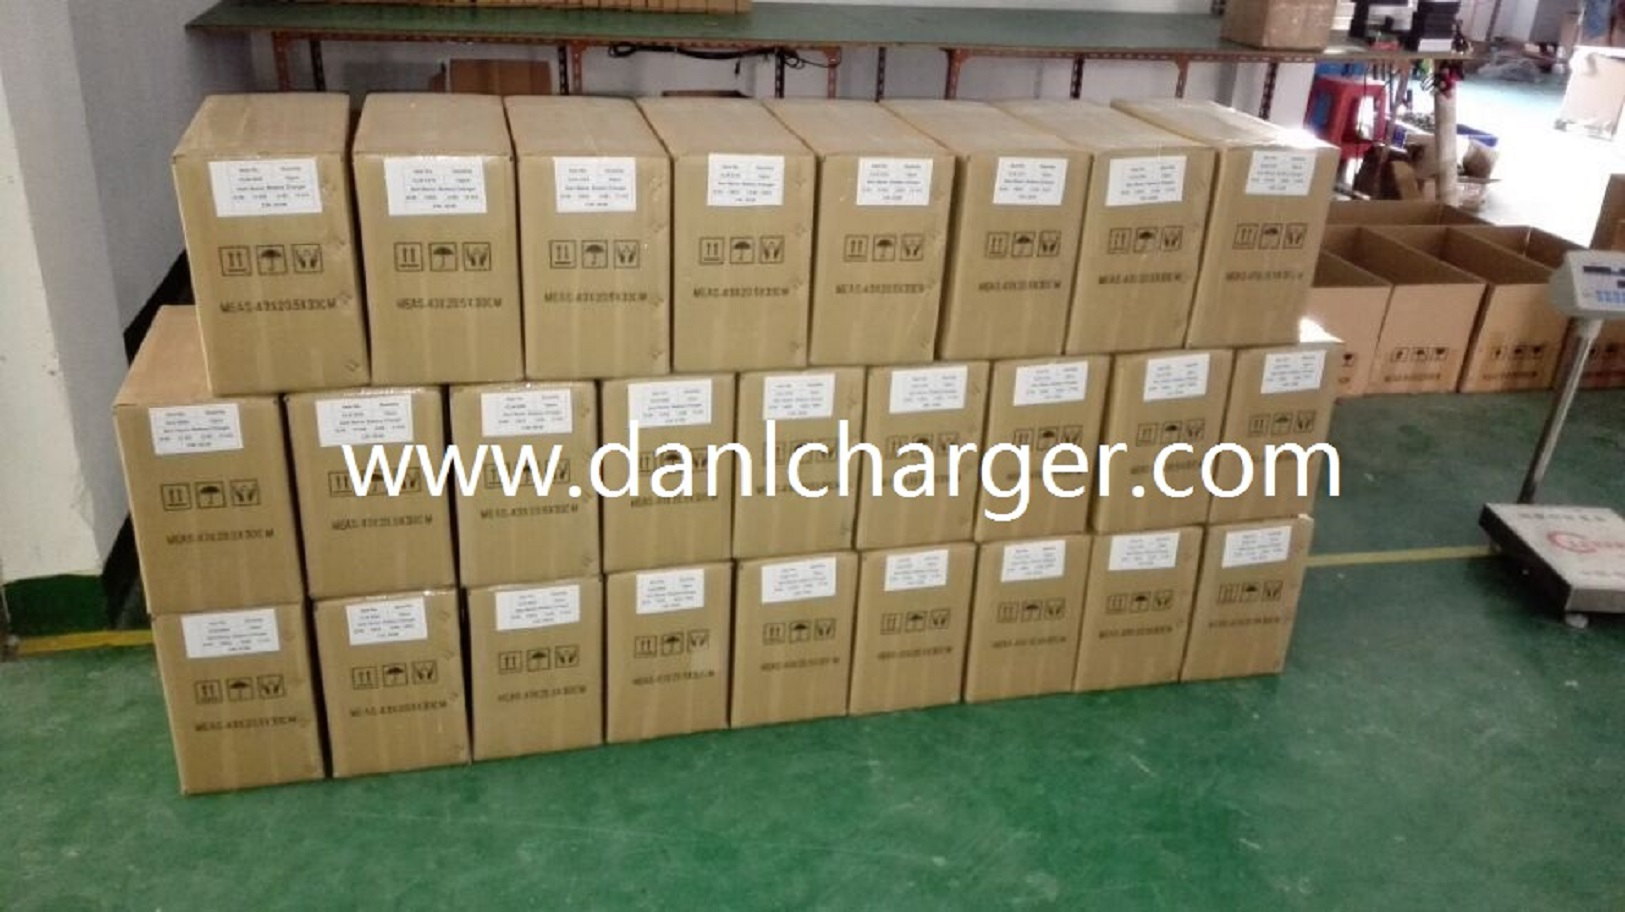 Hundreds Lithium Battery Chargers Were Sent To Italy